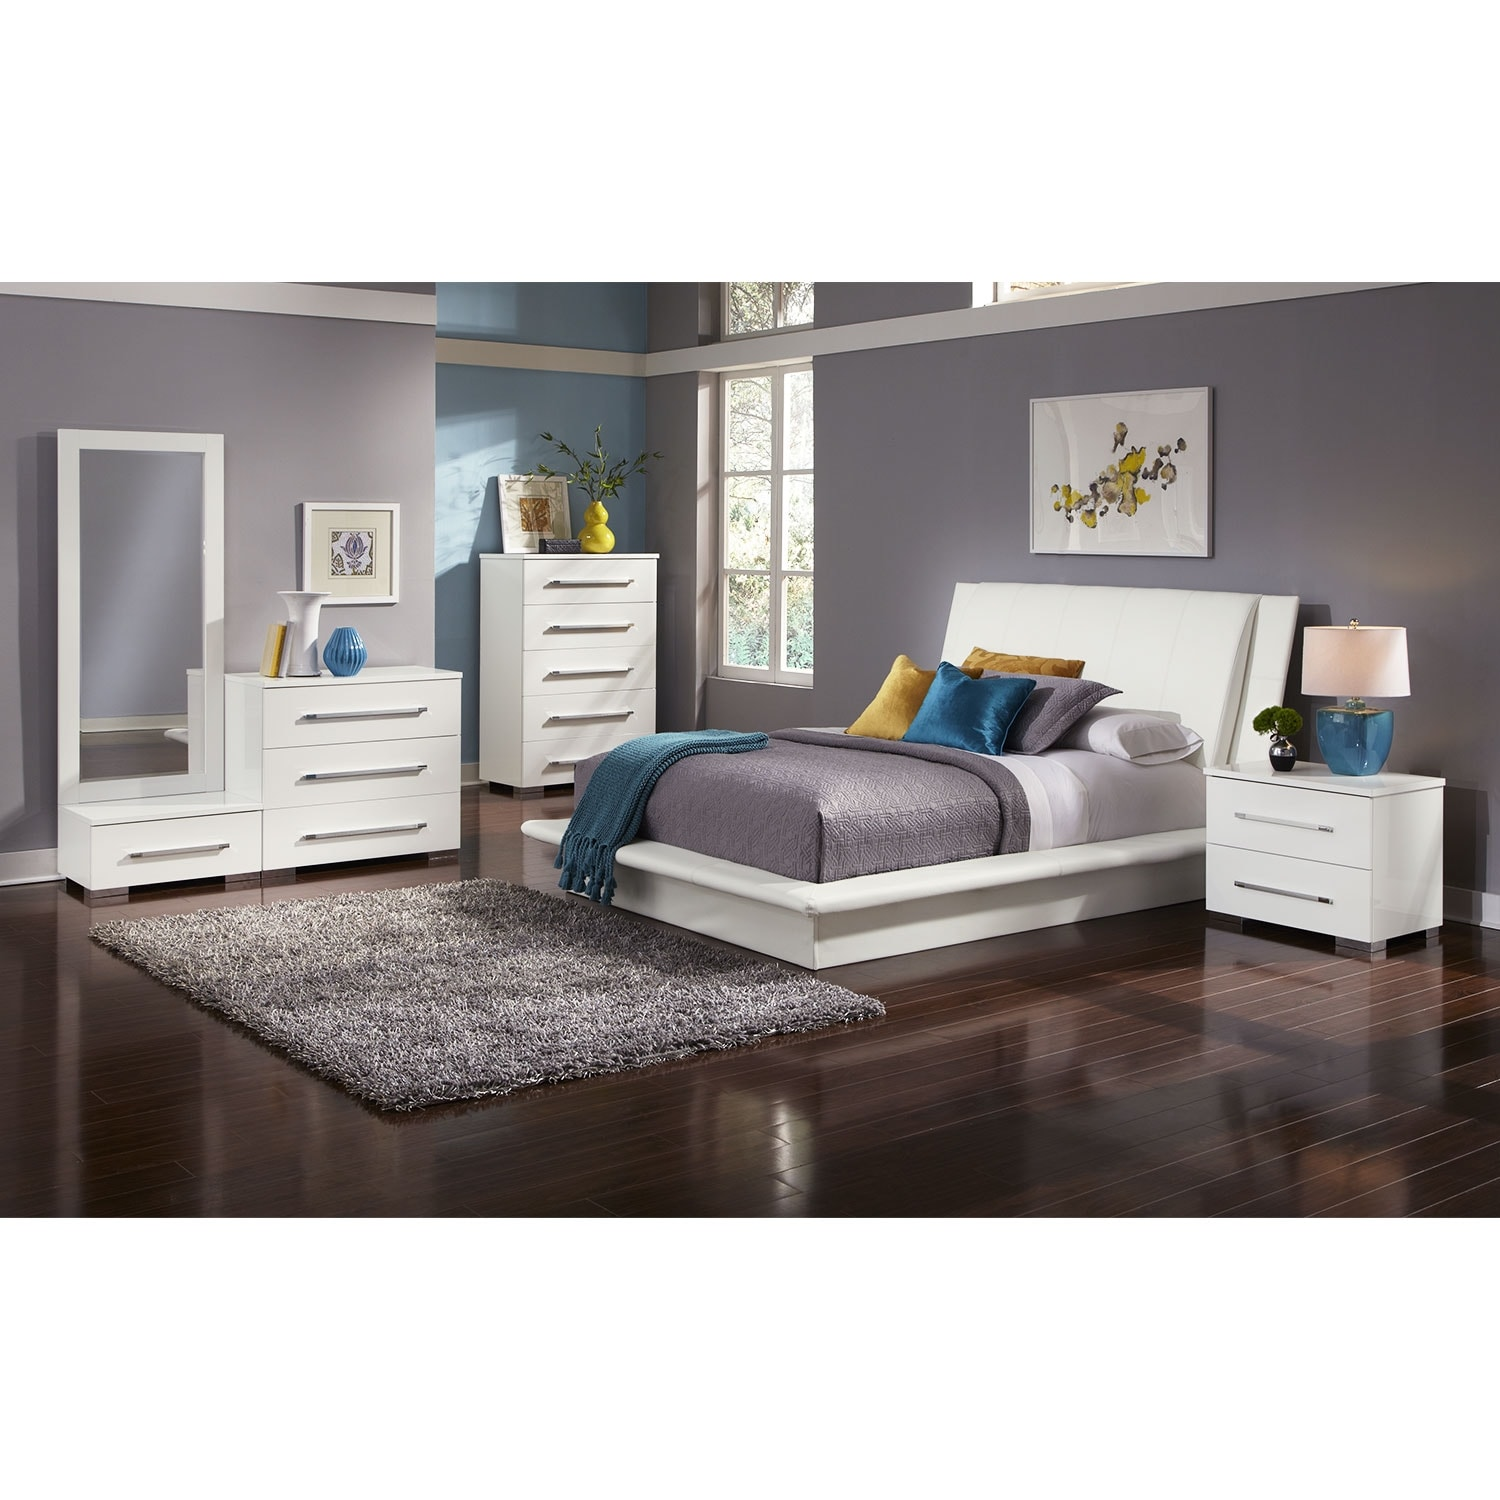 Click to change image. Dimora 7 Piece Queen Upholstered Bedroom Set   White   American